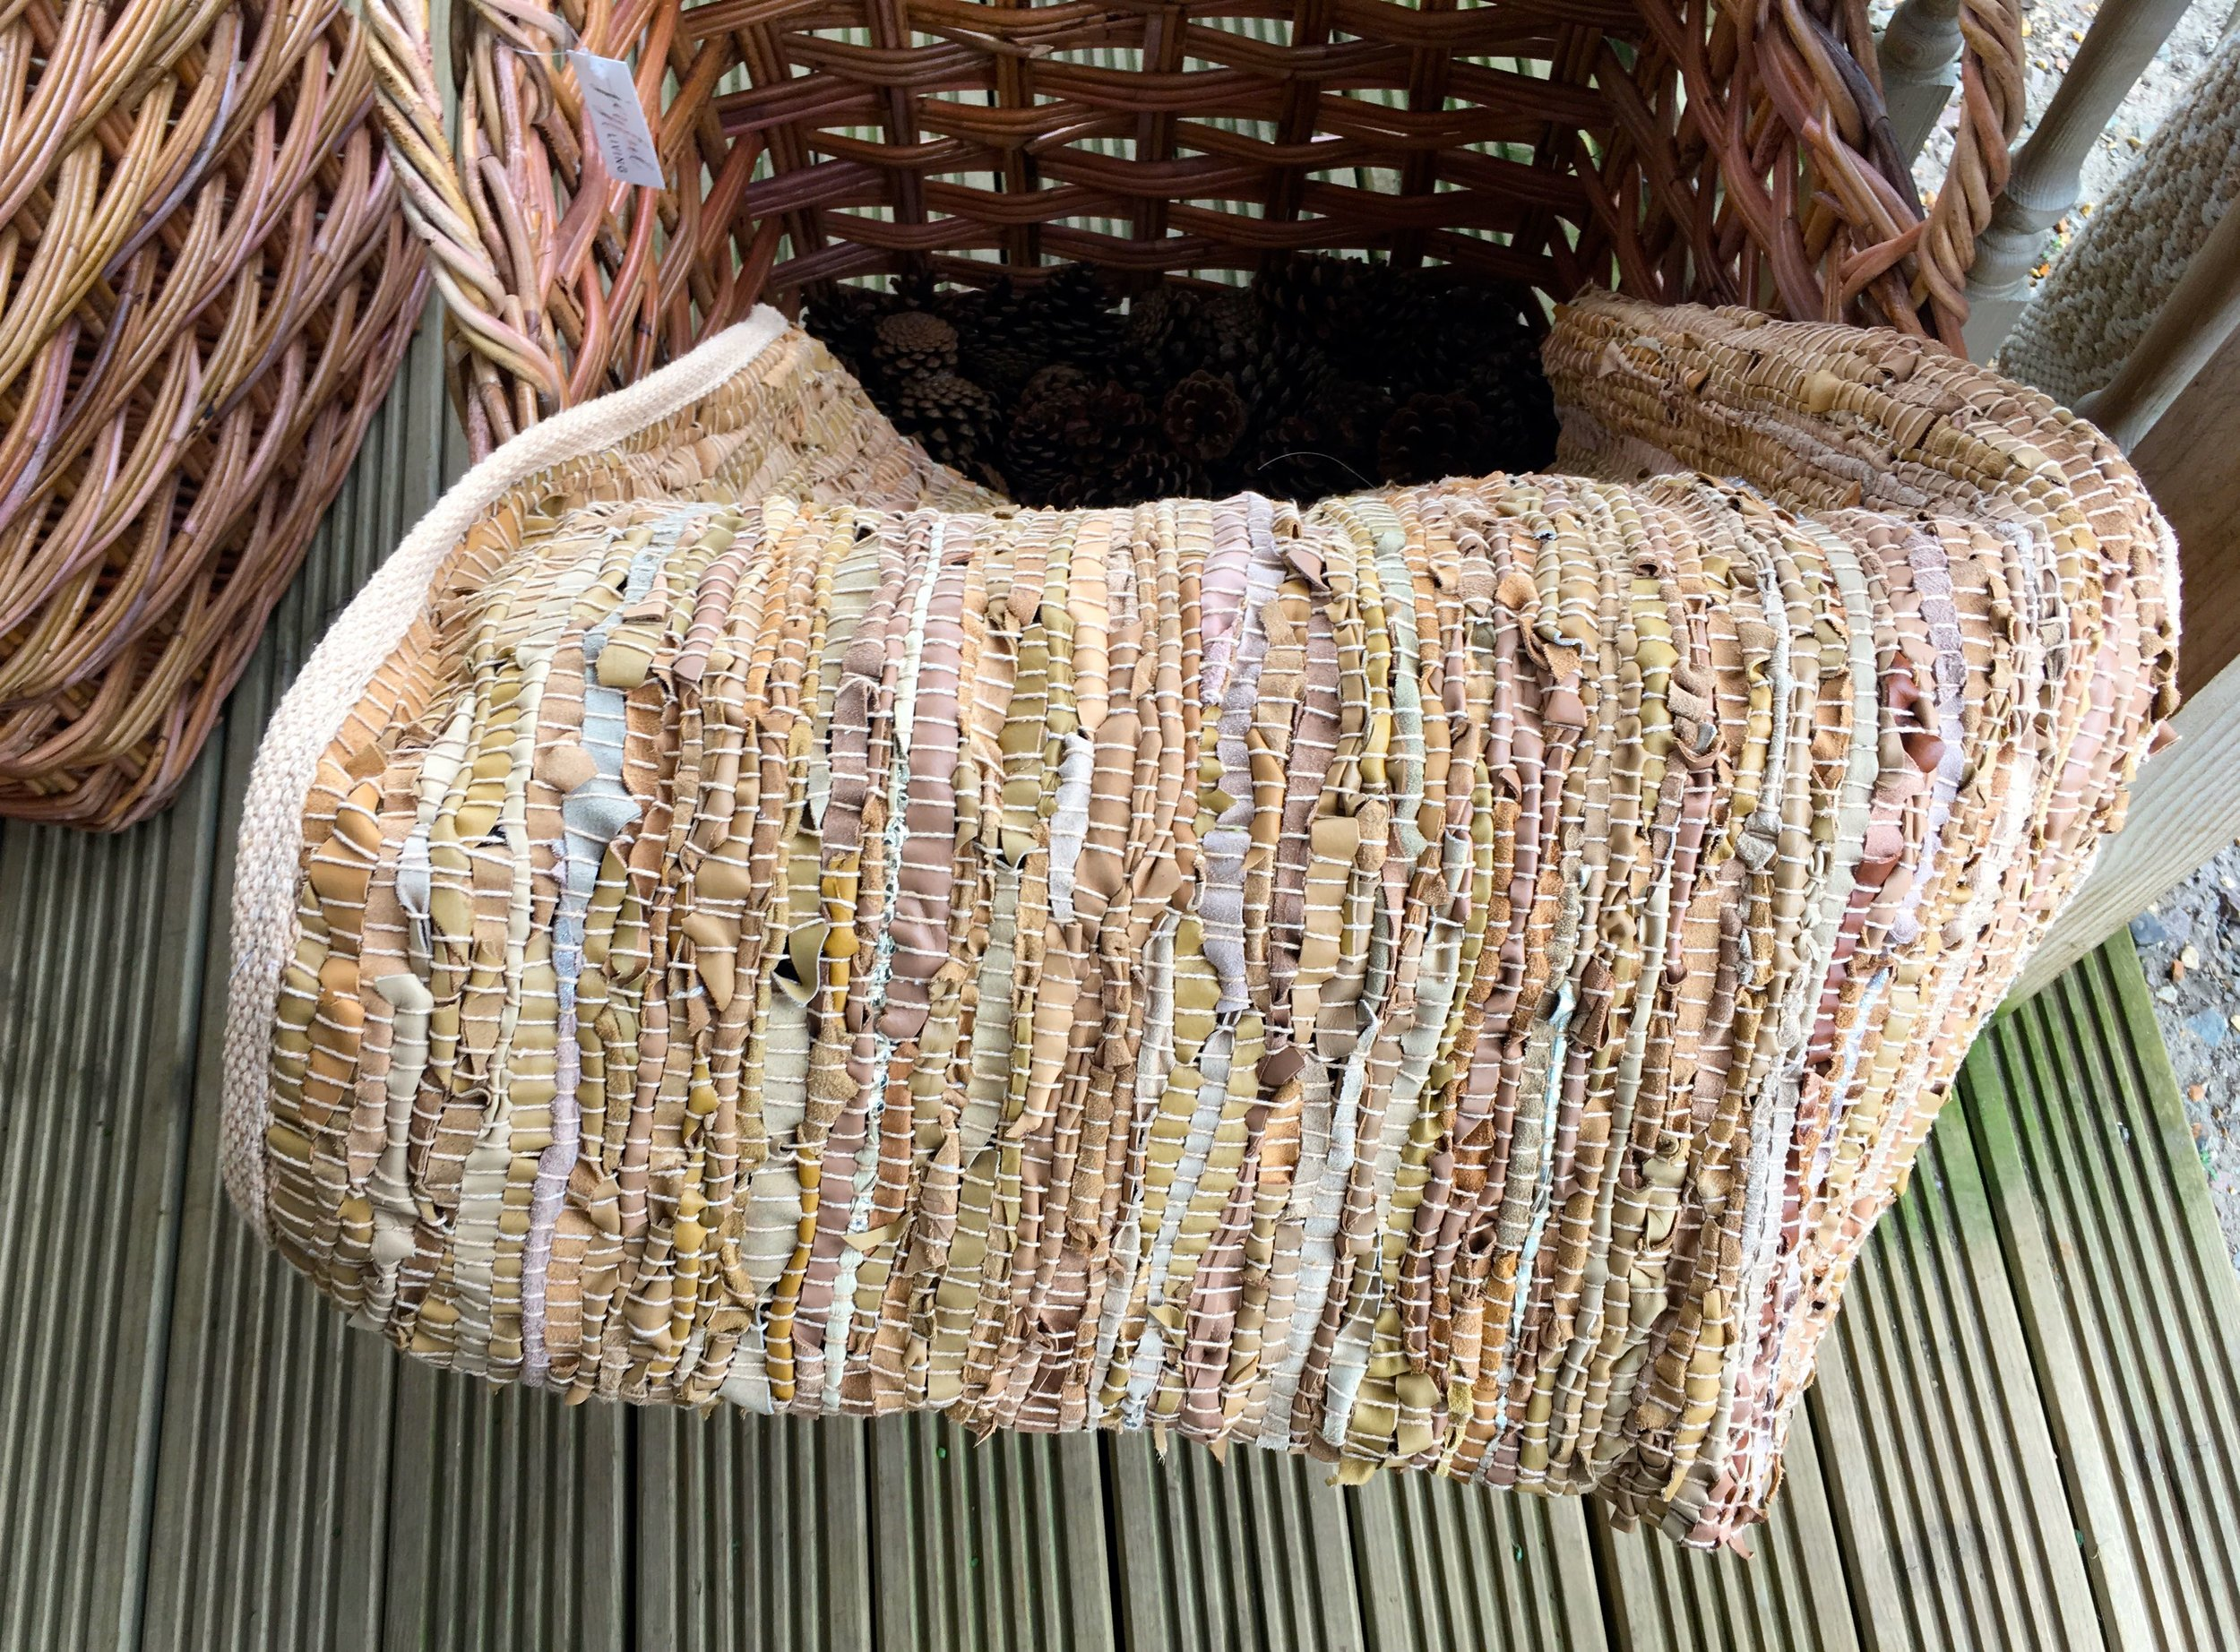 A rug made from leather strips at Joyful Living Norfolk